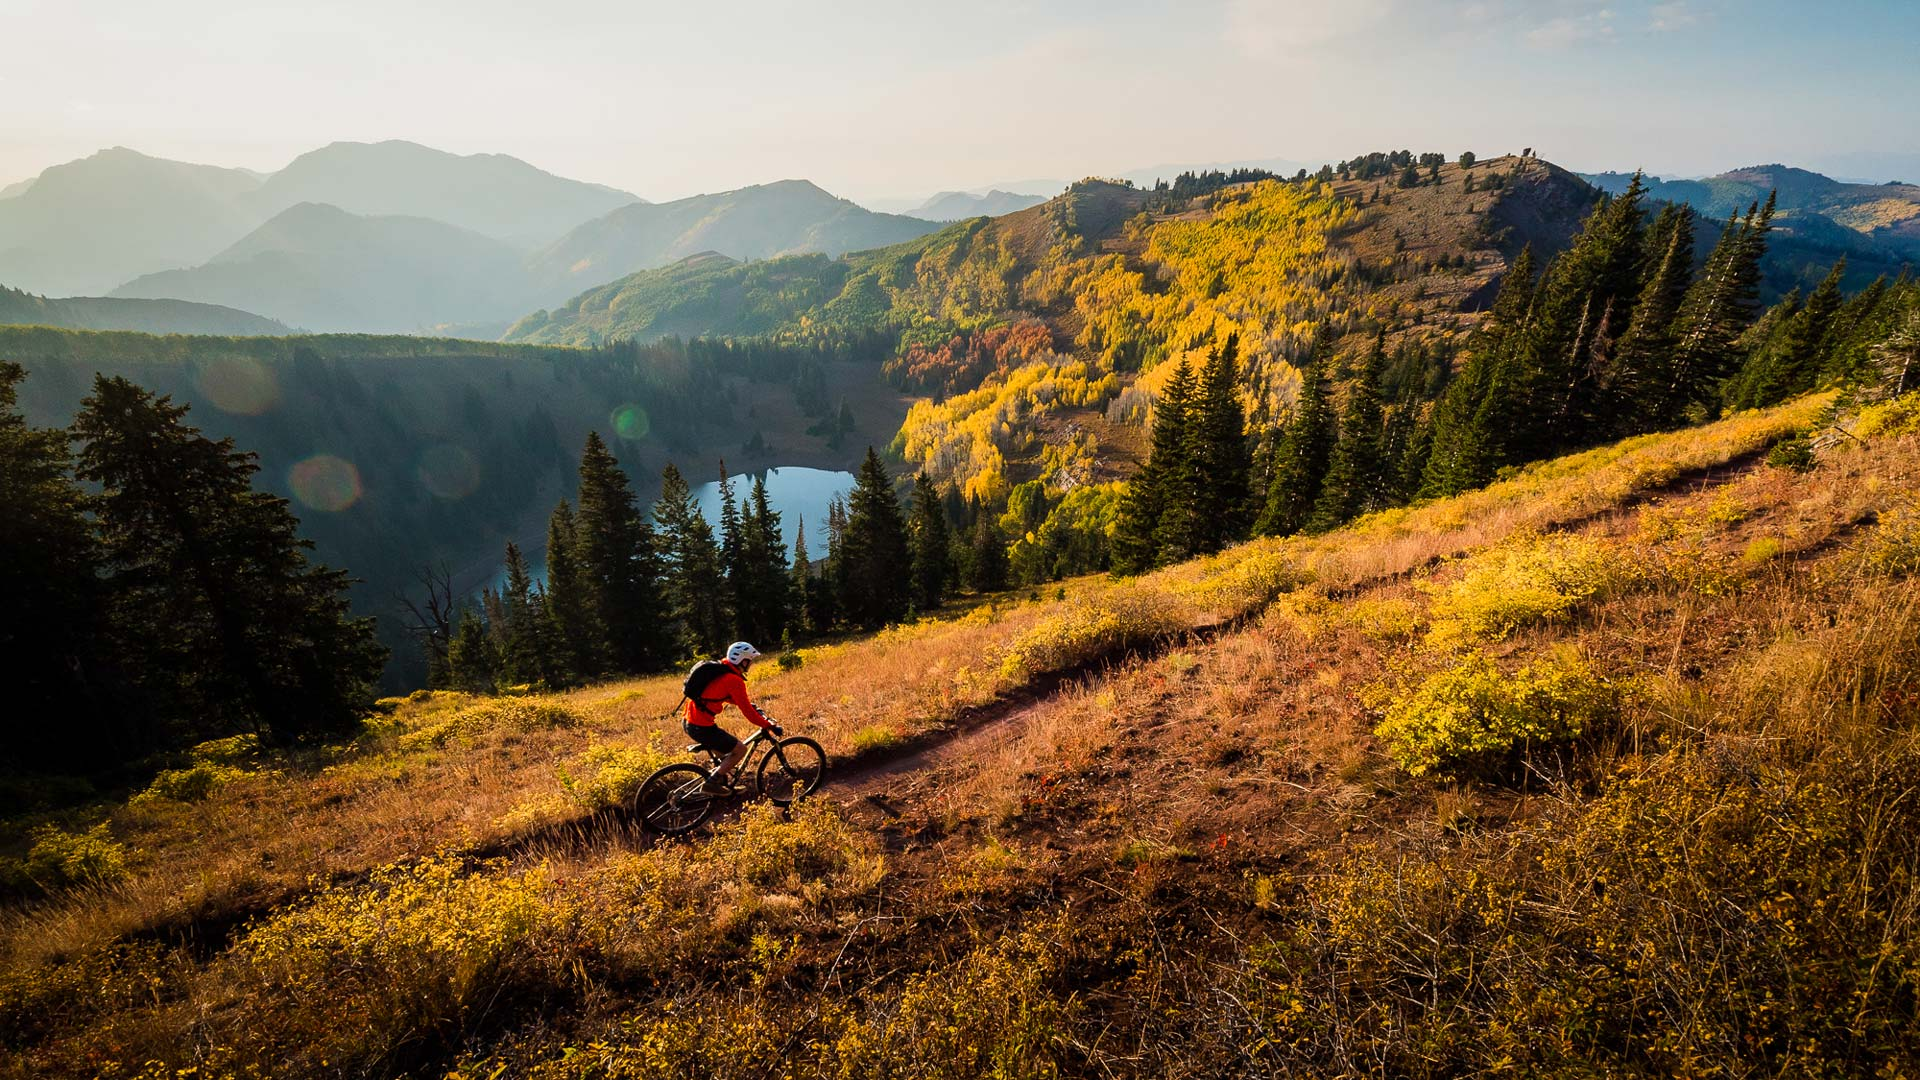 How to take great mountain bike photos - Step one: Find a rad subject and put it in front of a rad background.